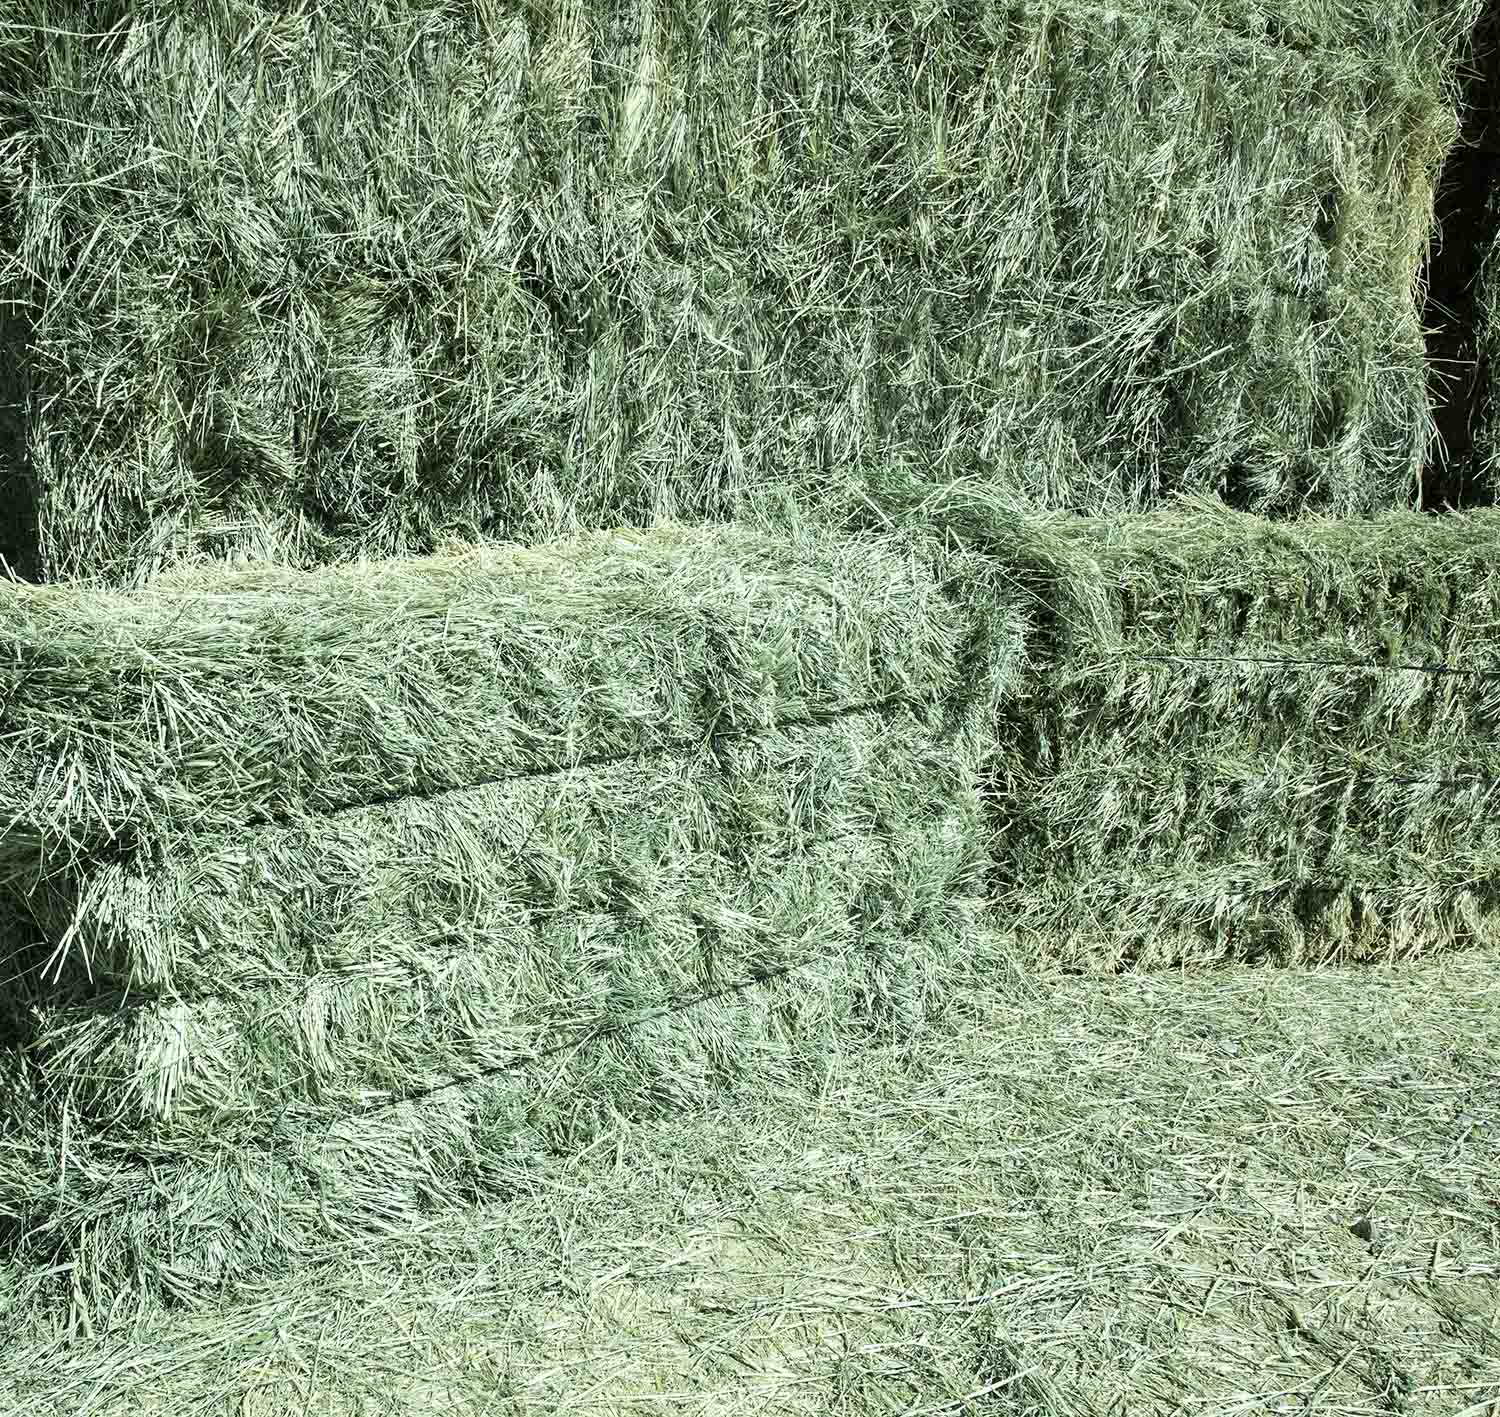 What is the difference between round and square bales?